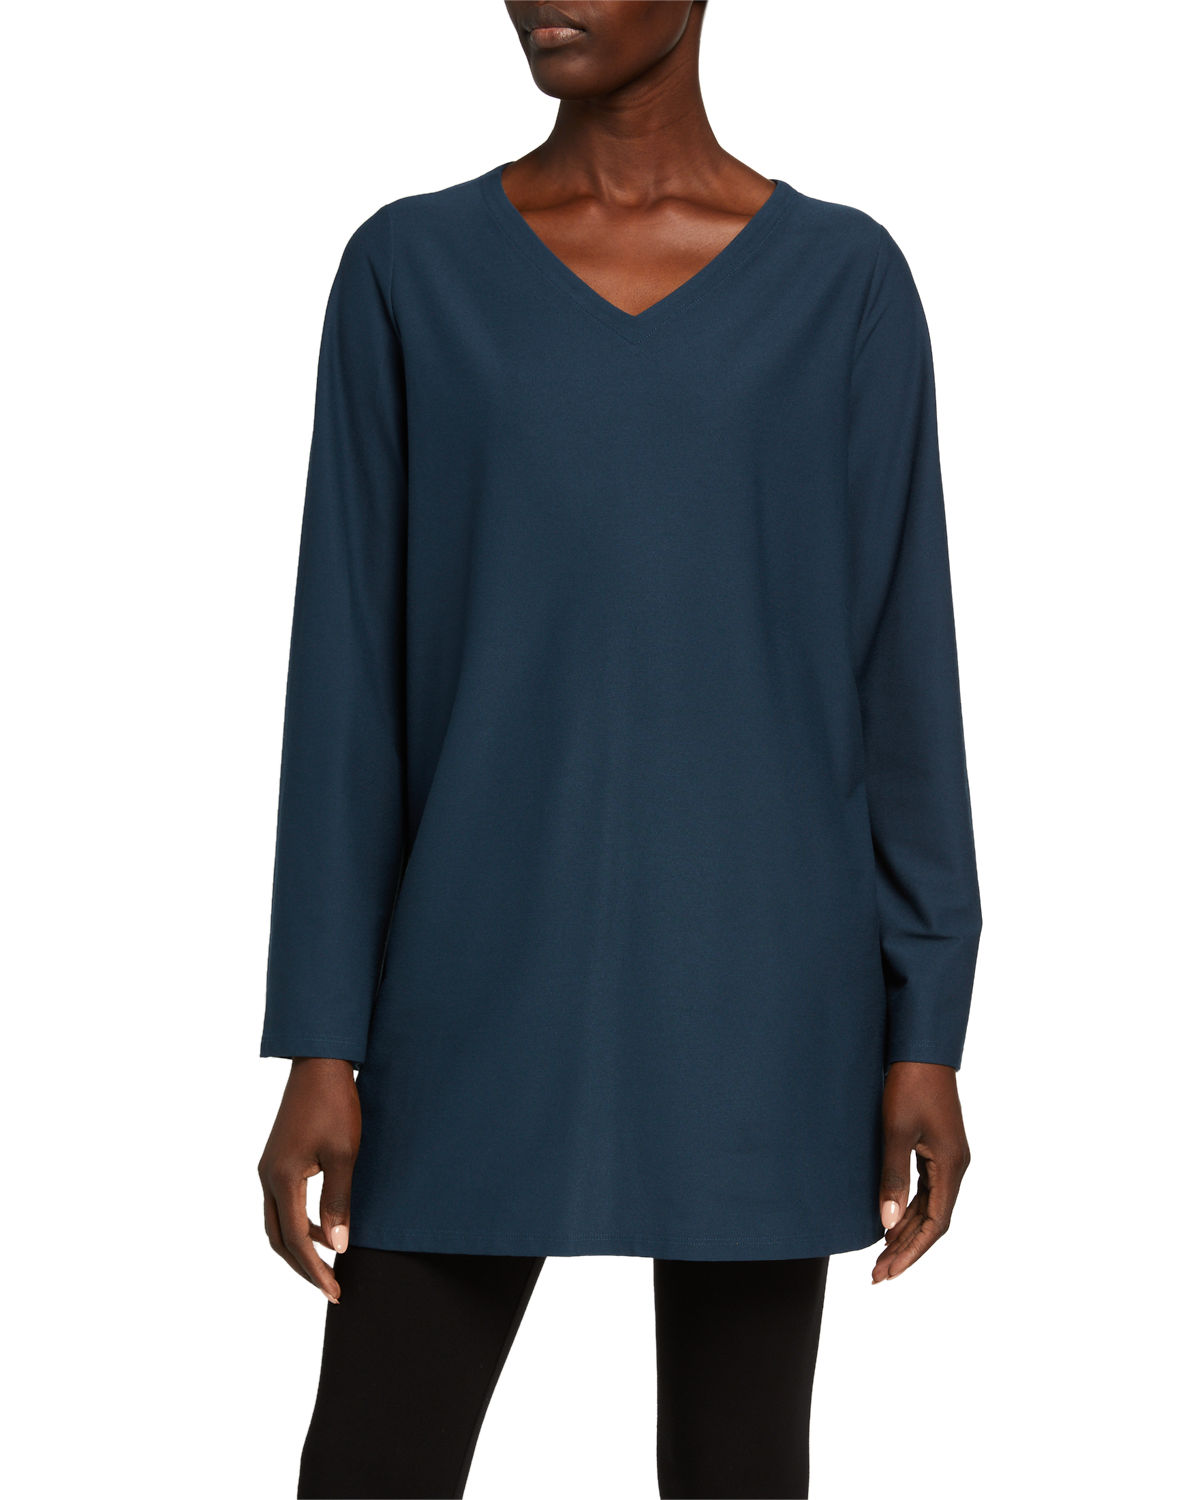 Eileen Fisher PLUS SIZE V-NECK STRETCH CREPE SIDE SLIT TUNIC